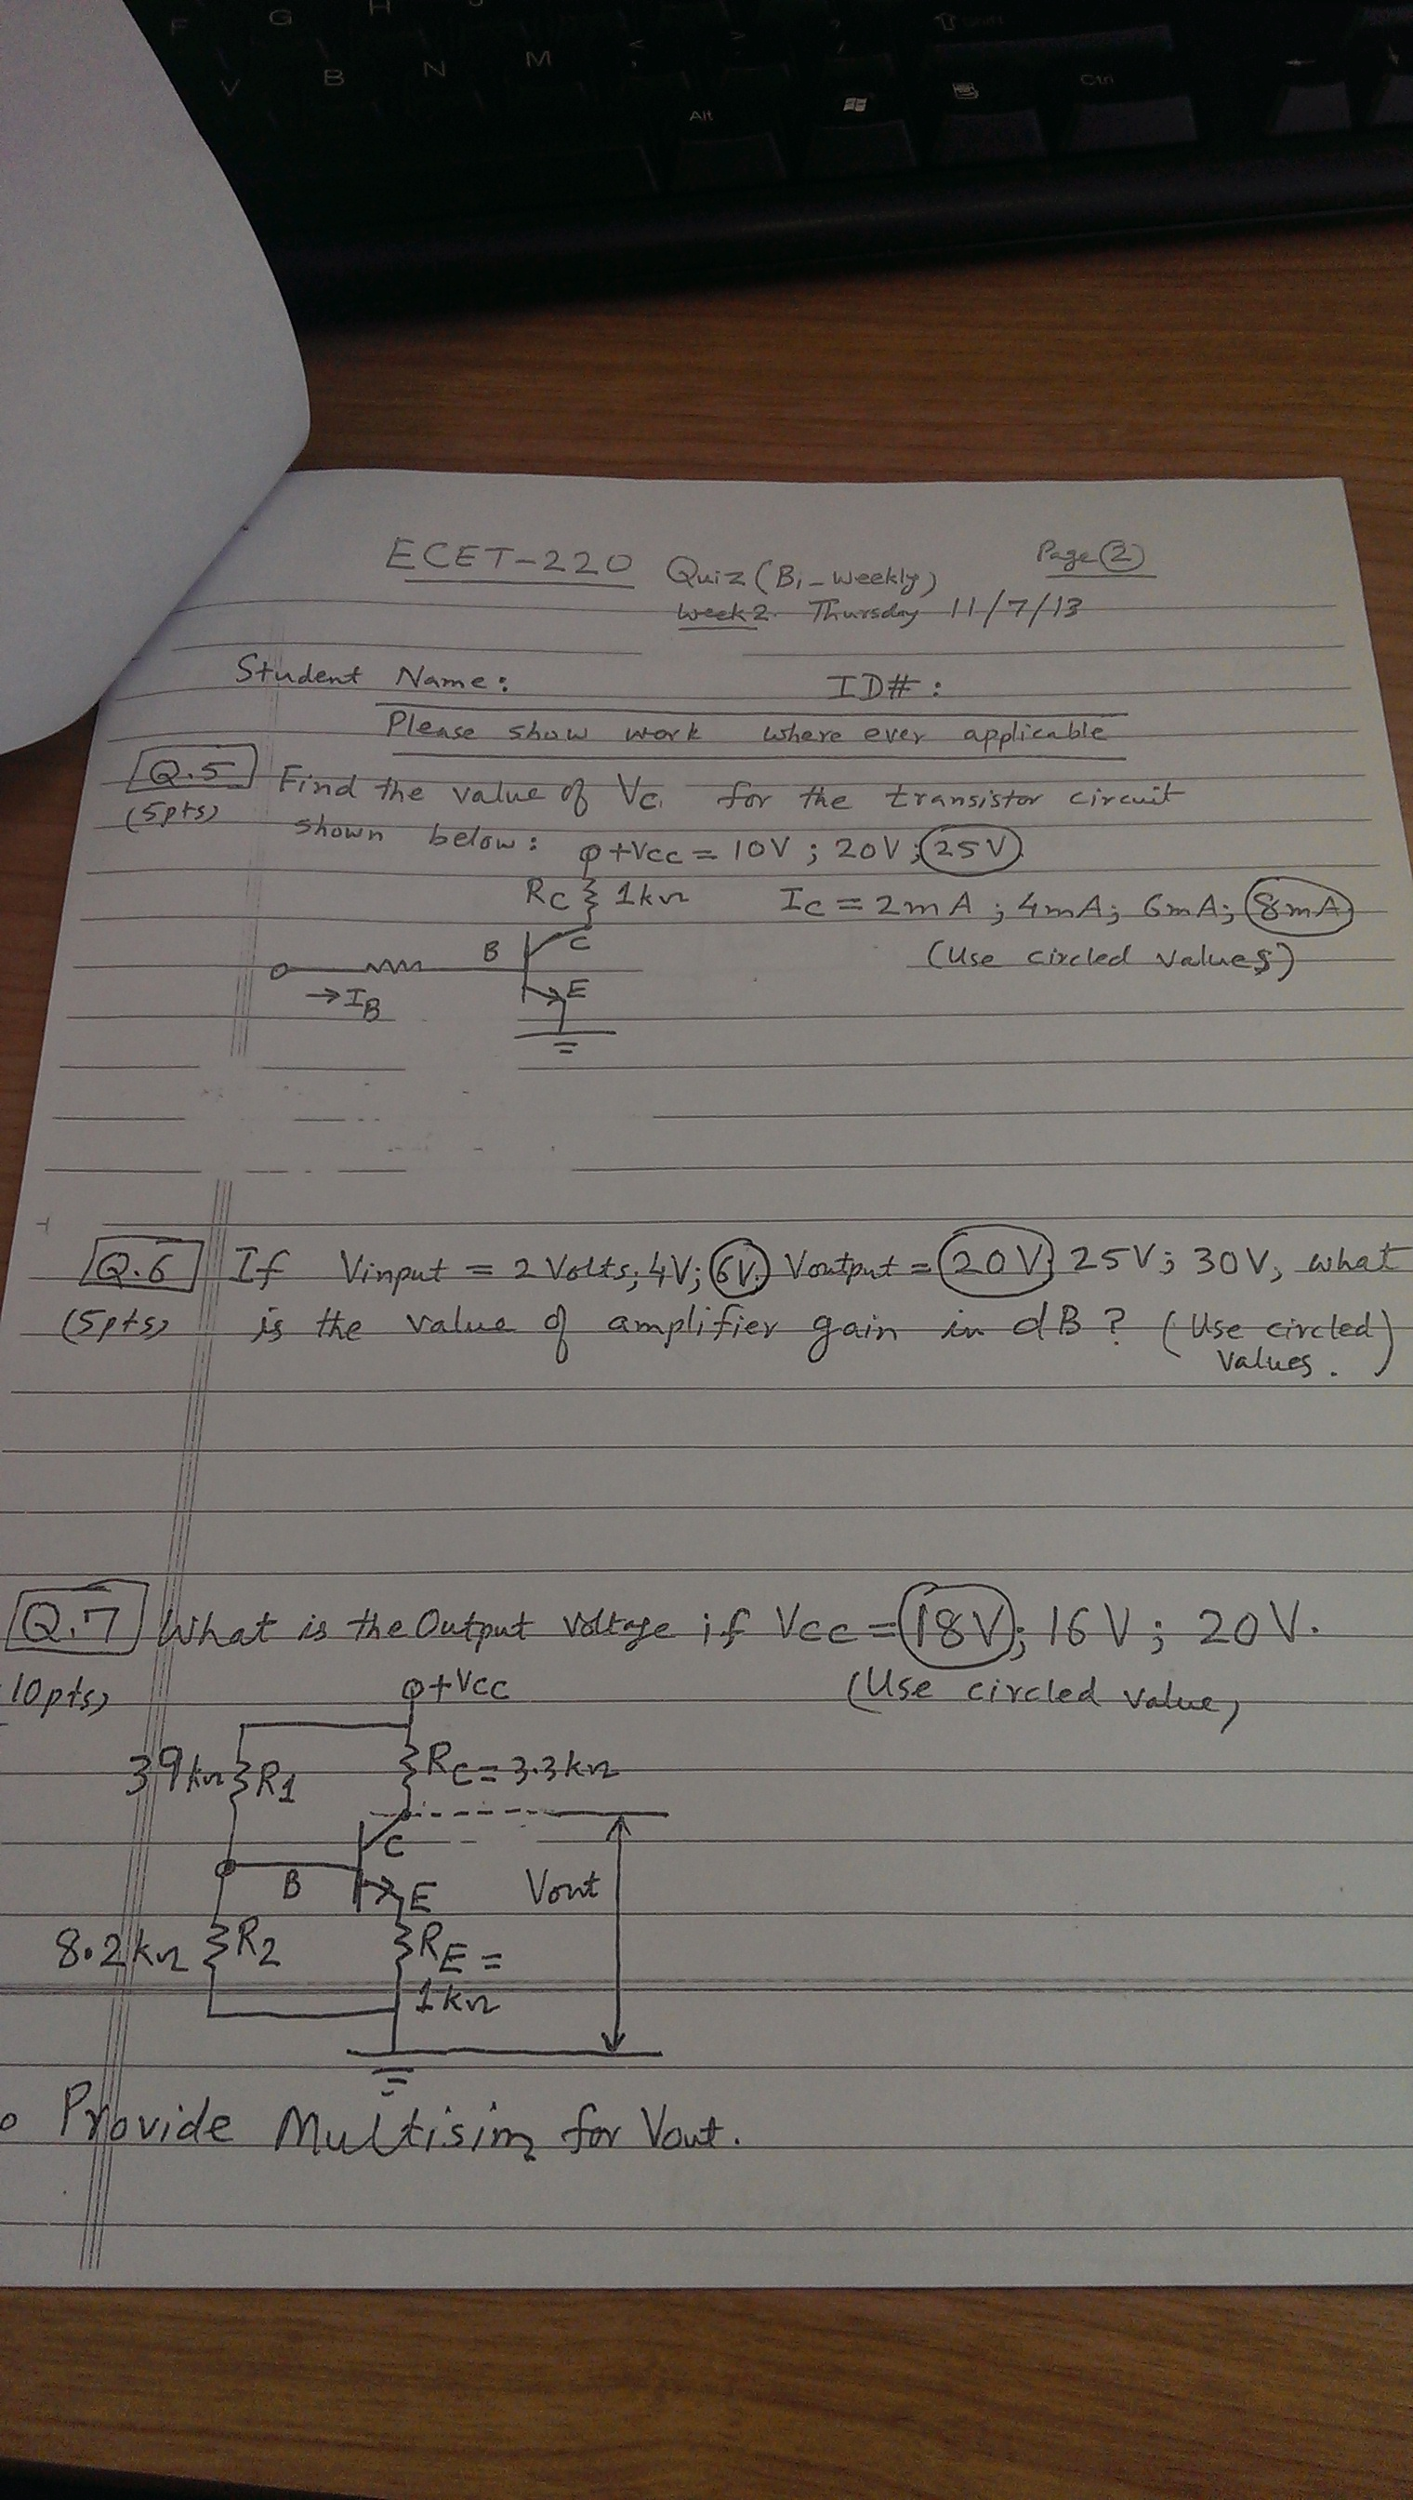 Find the value of Vc, for the transistor circuit s